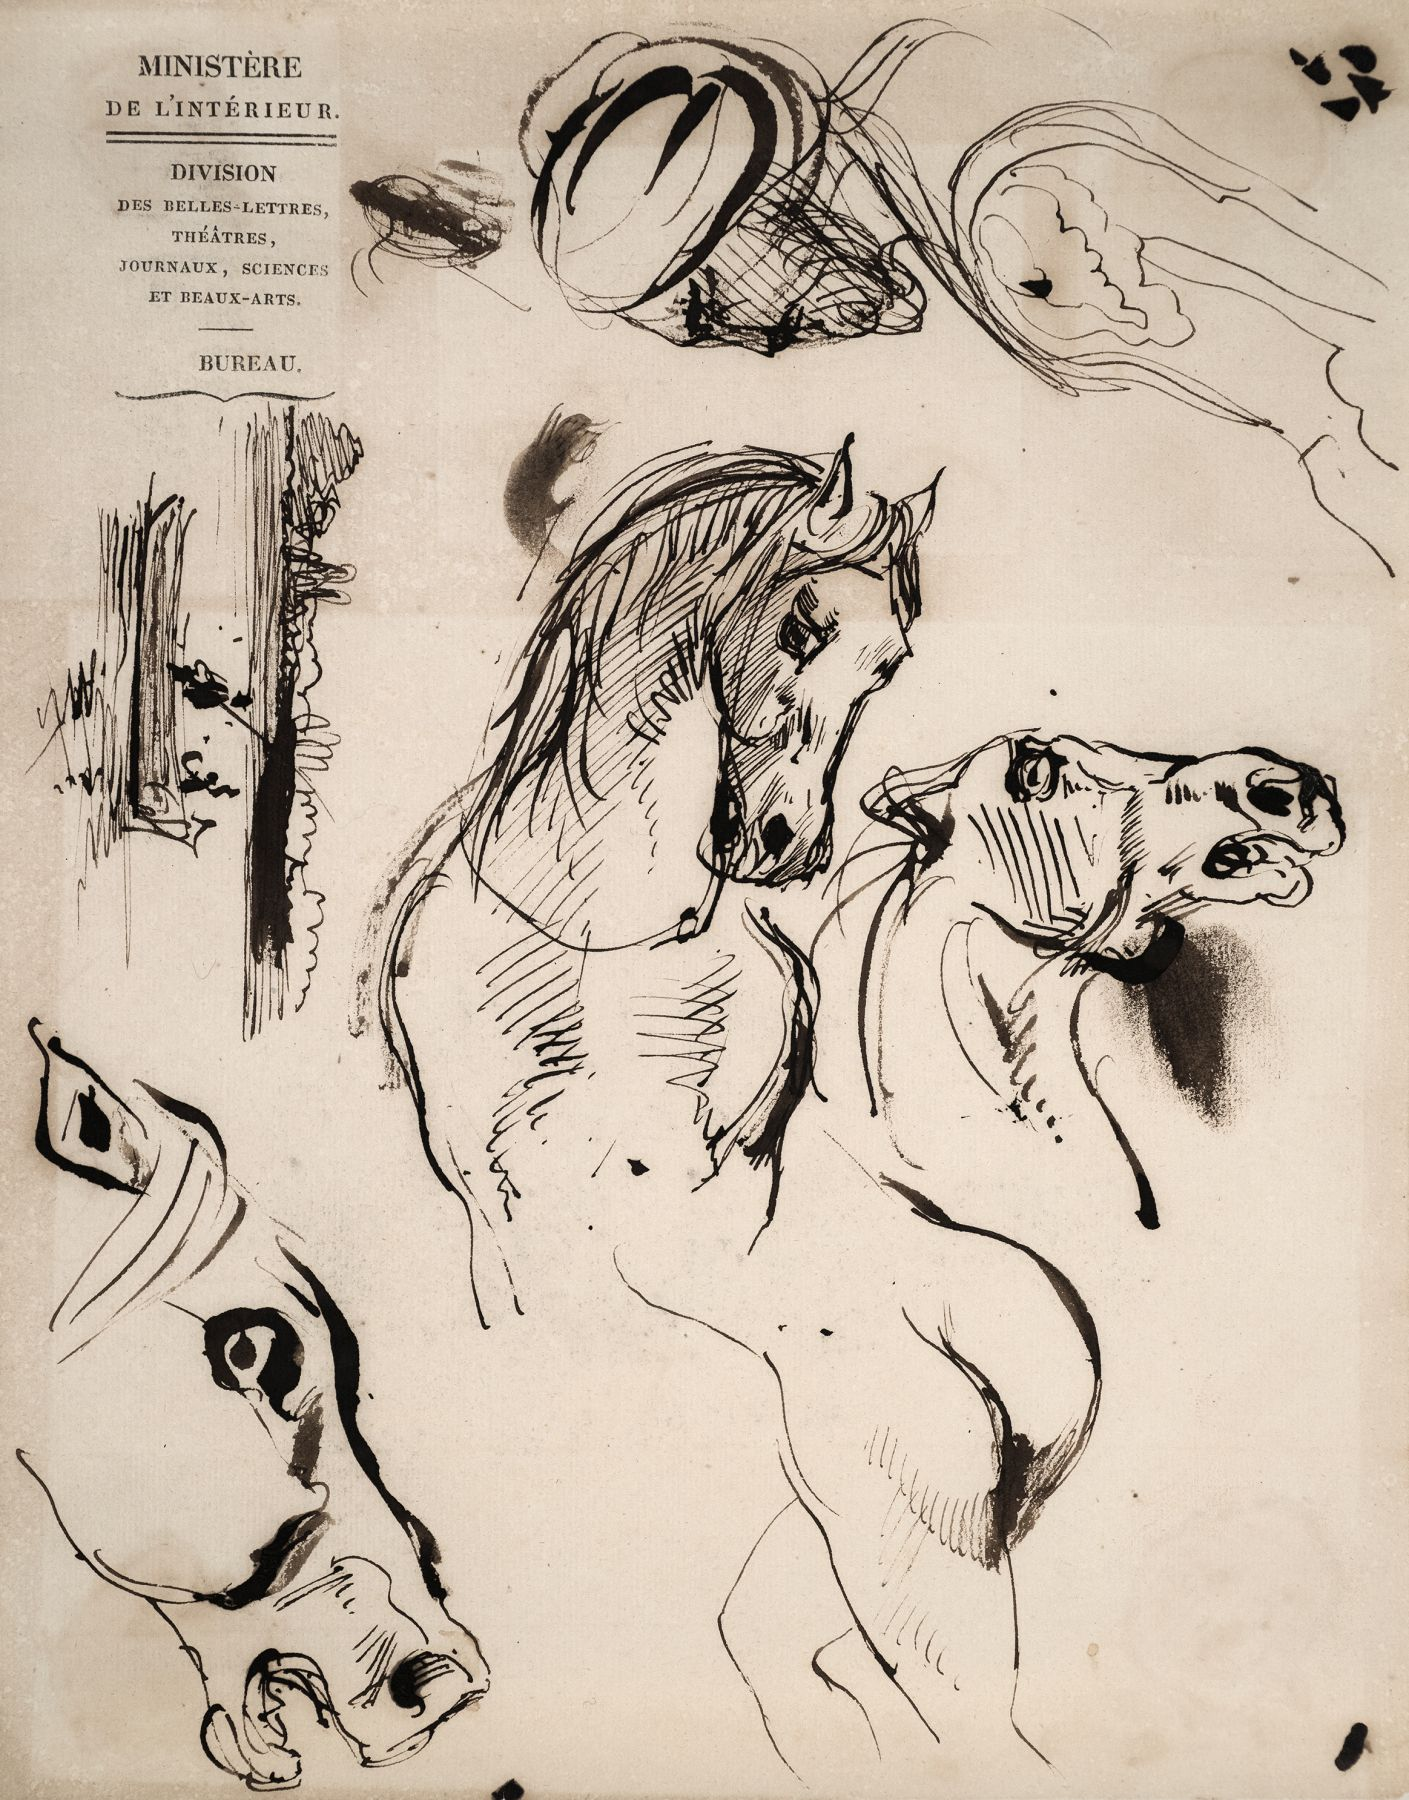 Eugene delacroix Sheet of Studies of Horses, a Moroccan Man in a Turban, and a Landscape Drawing on Stationary from the French Ministry    Pen and brown ink on paper 9 1/4 x 7 1/8 inches